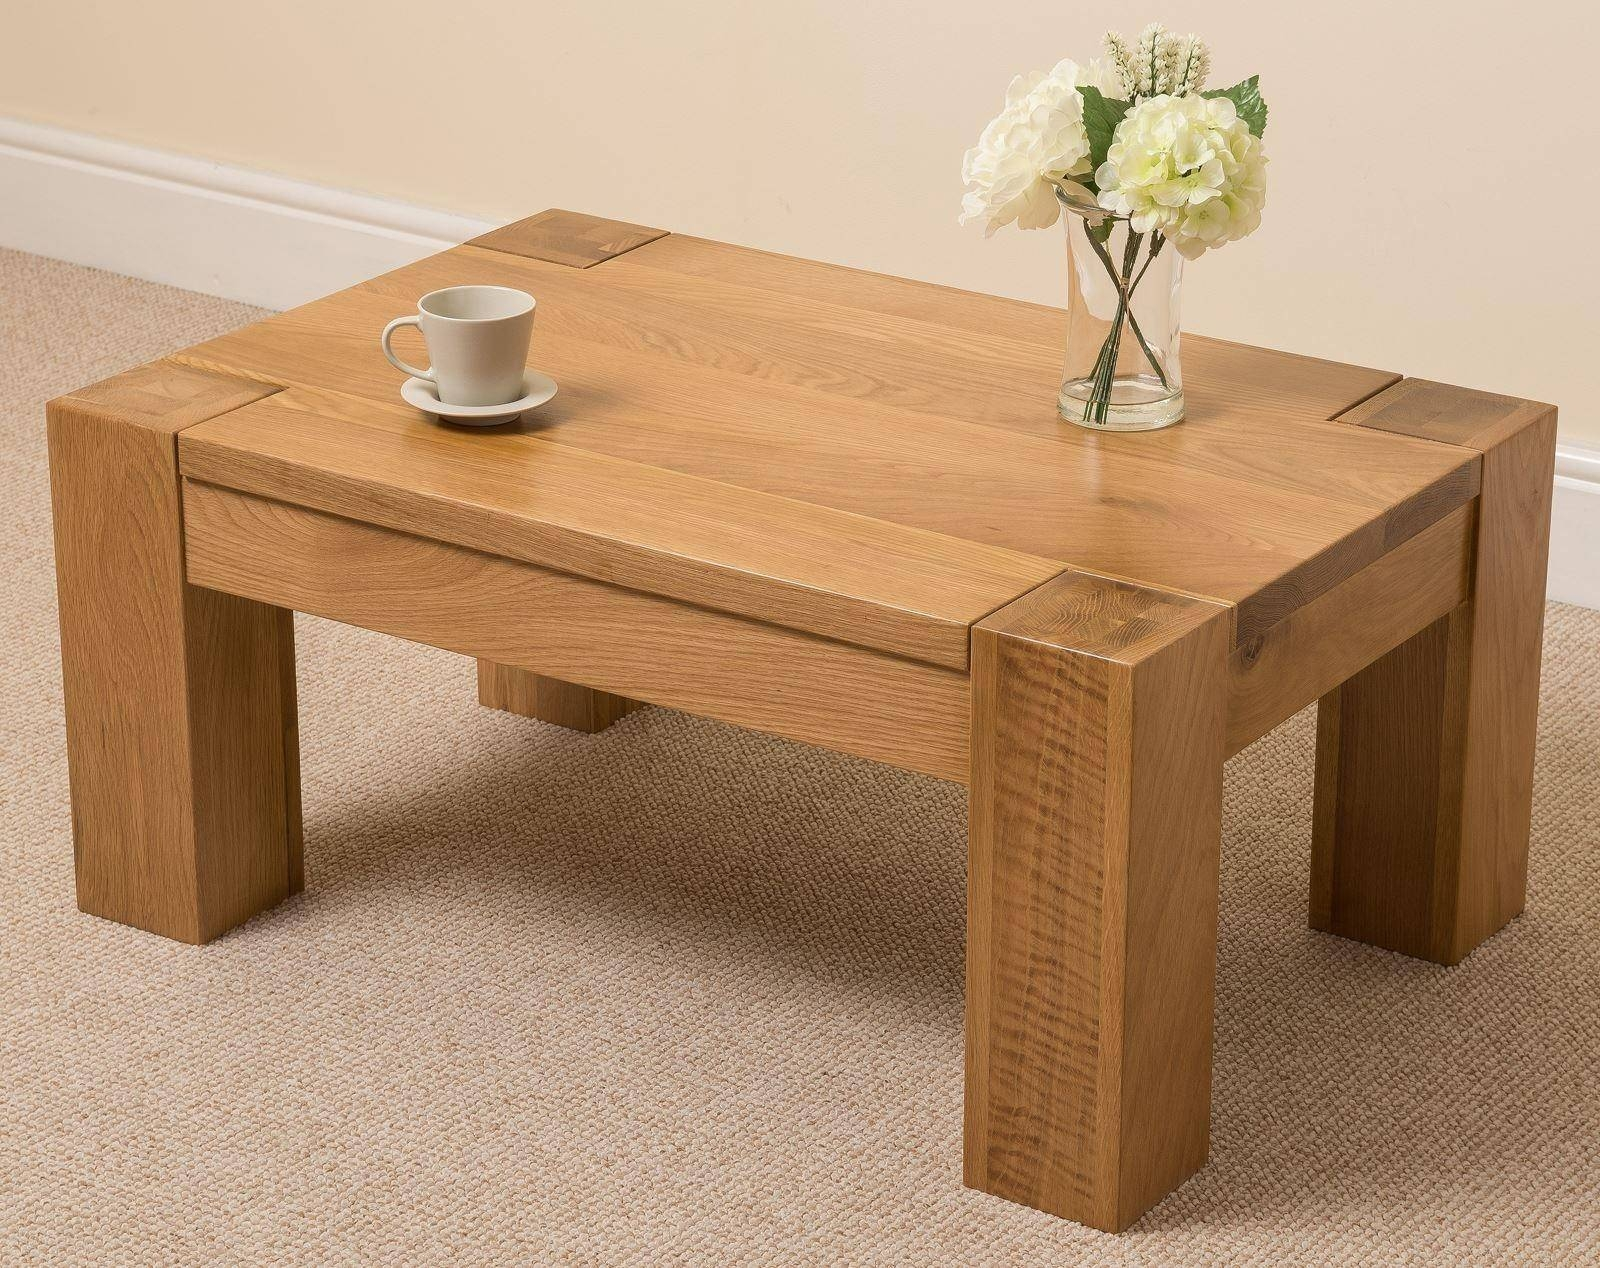 Kuba Solid Oak Coffee Table | Free Uk Delivery Intended For Oak Wood Coffee Tables (View 5 of 15)